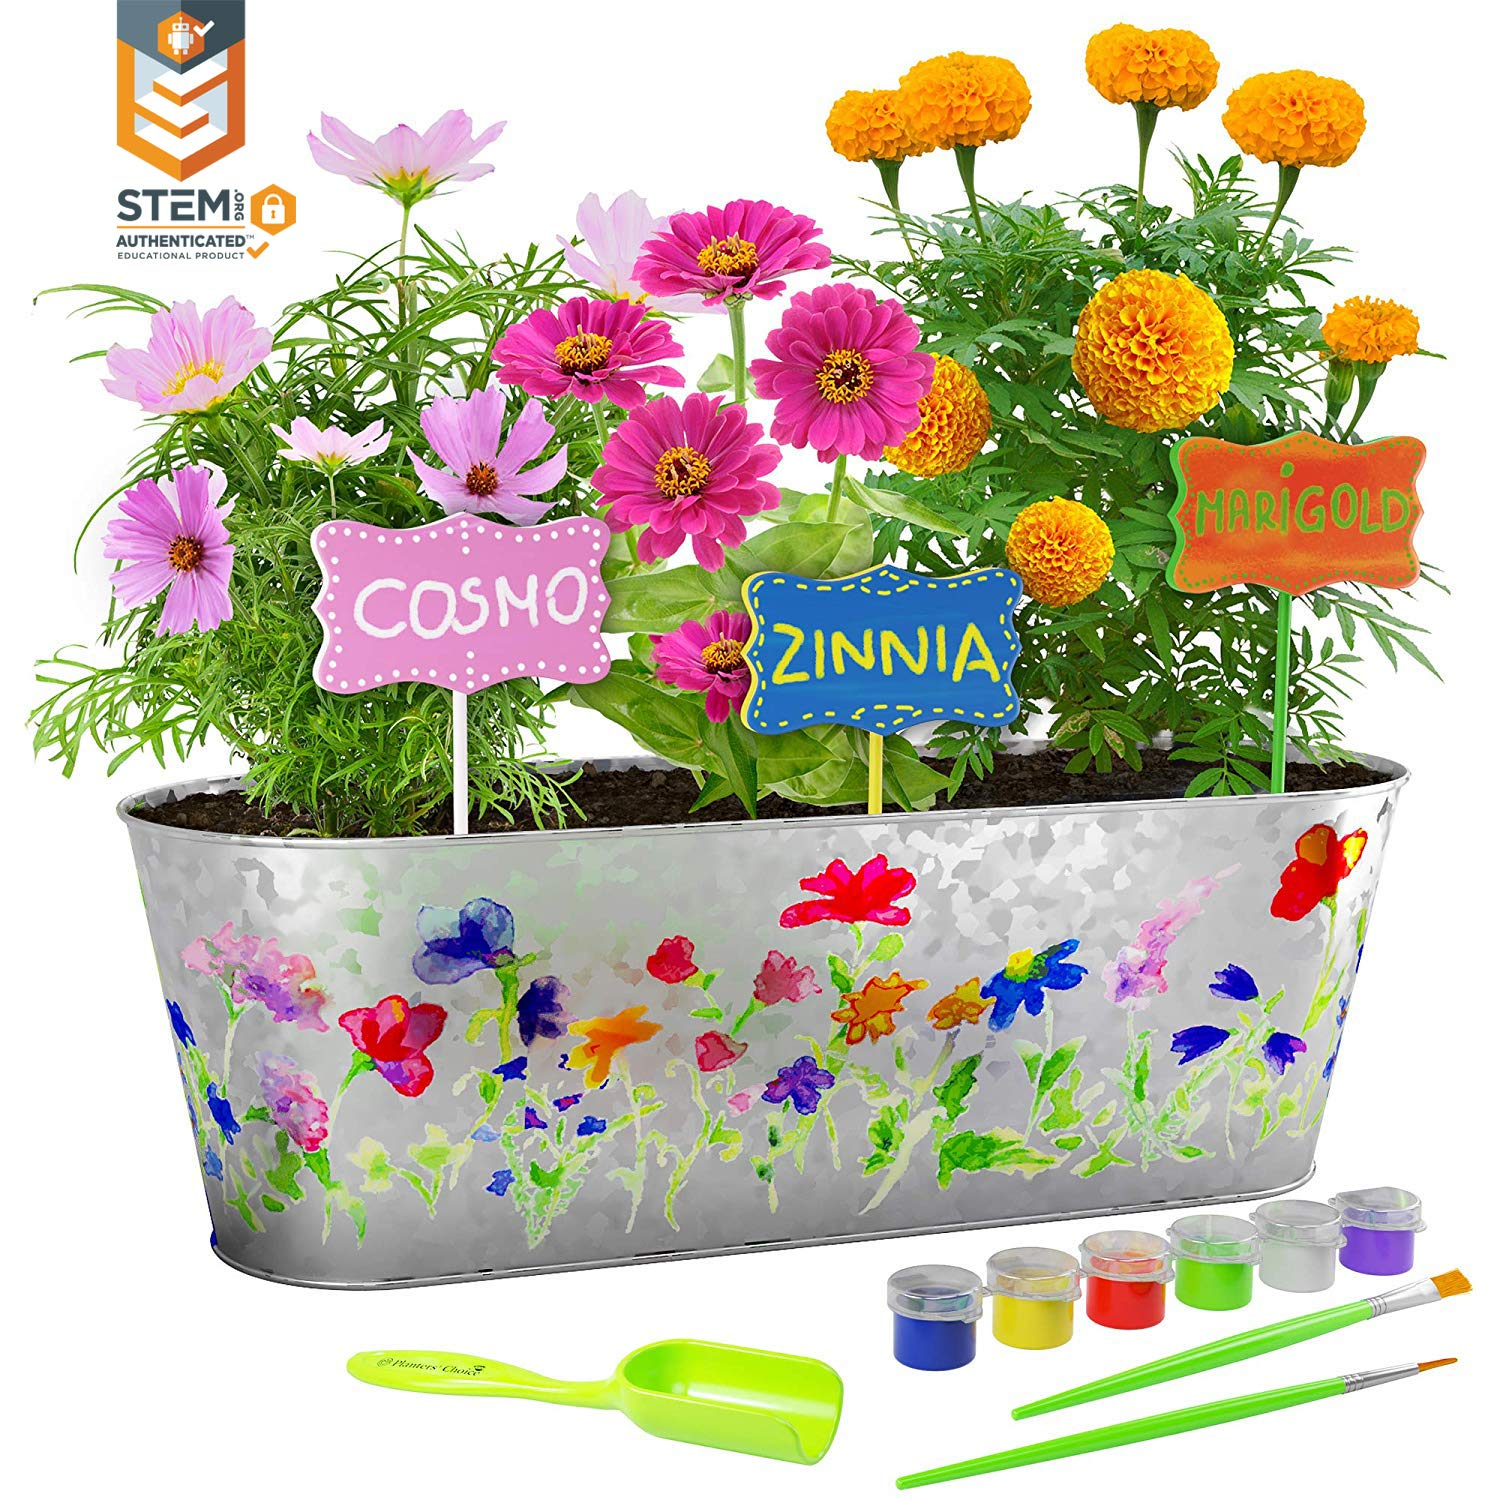 Dan&Darci Paint & Plant Flower Growing Kit - Grow Cosmos, Zinnia, Marigold Flowers : Includes Everything Needed to Paint and Grow - Great Gift for Children STEM by Dan&Darci